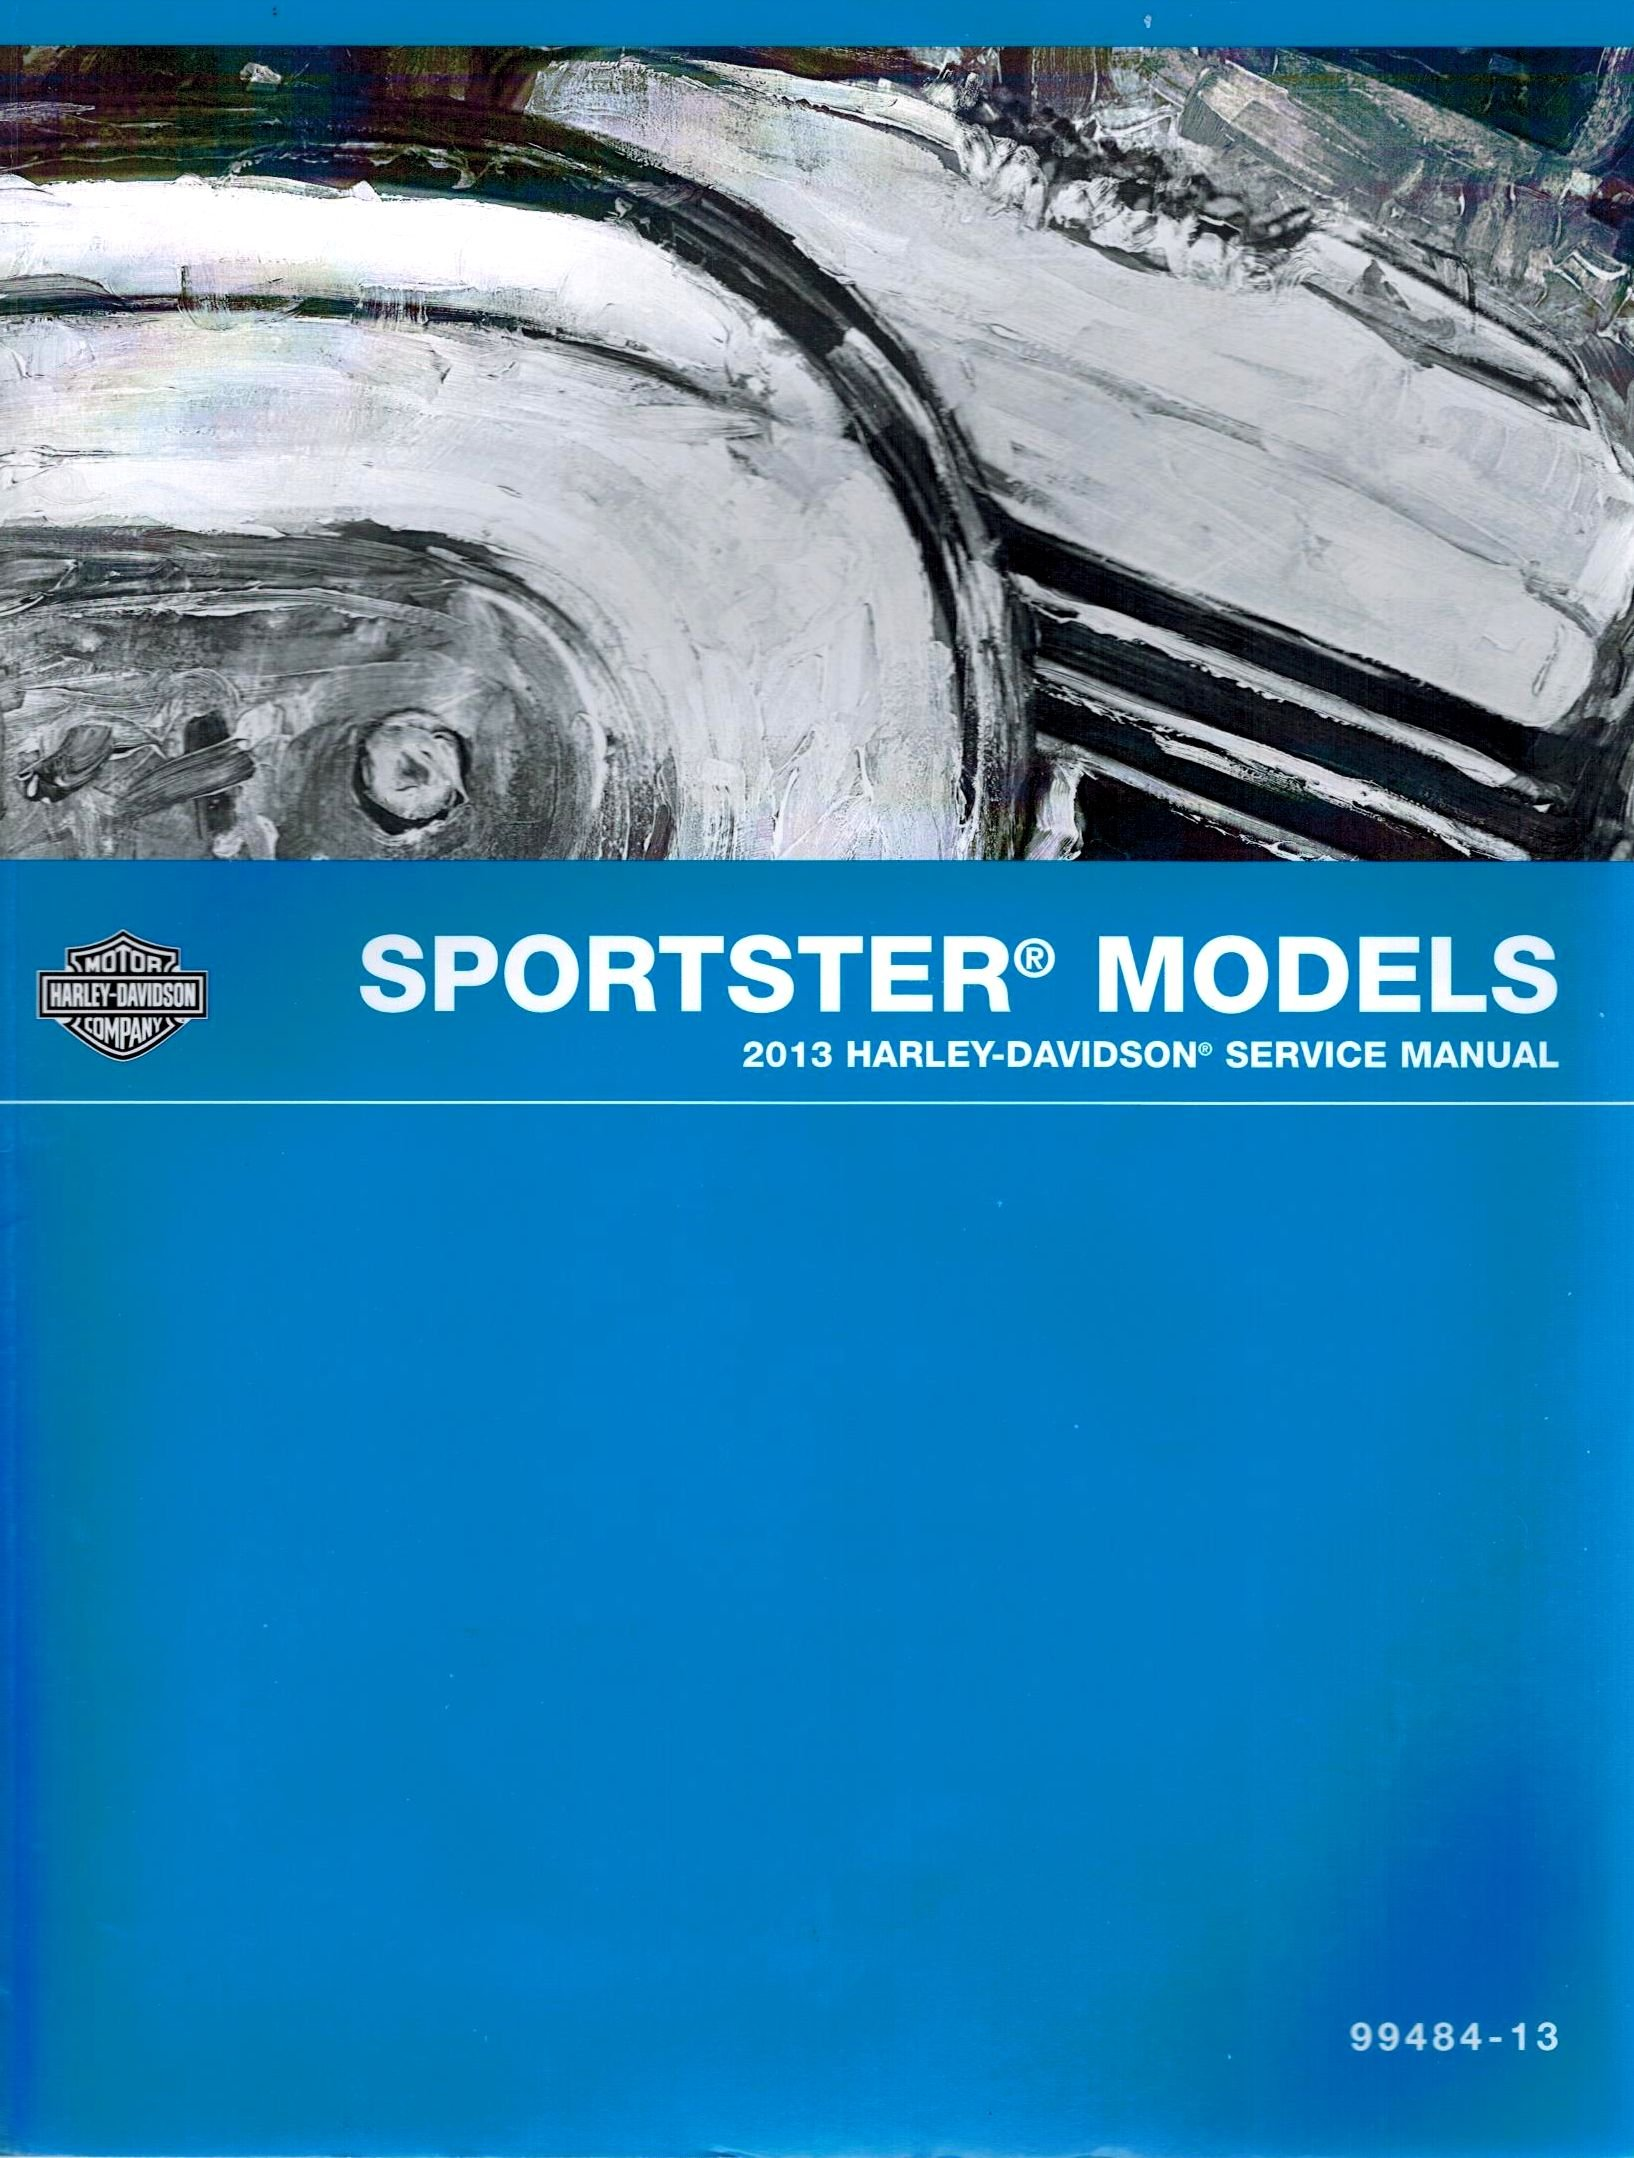 2013 Harley-Davidson Sportster Models Service Manual, Part Number 99484-13:  Harley-Davidson Motor Company: Amazon.com: Books